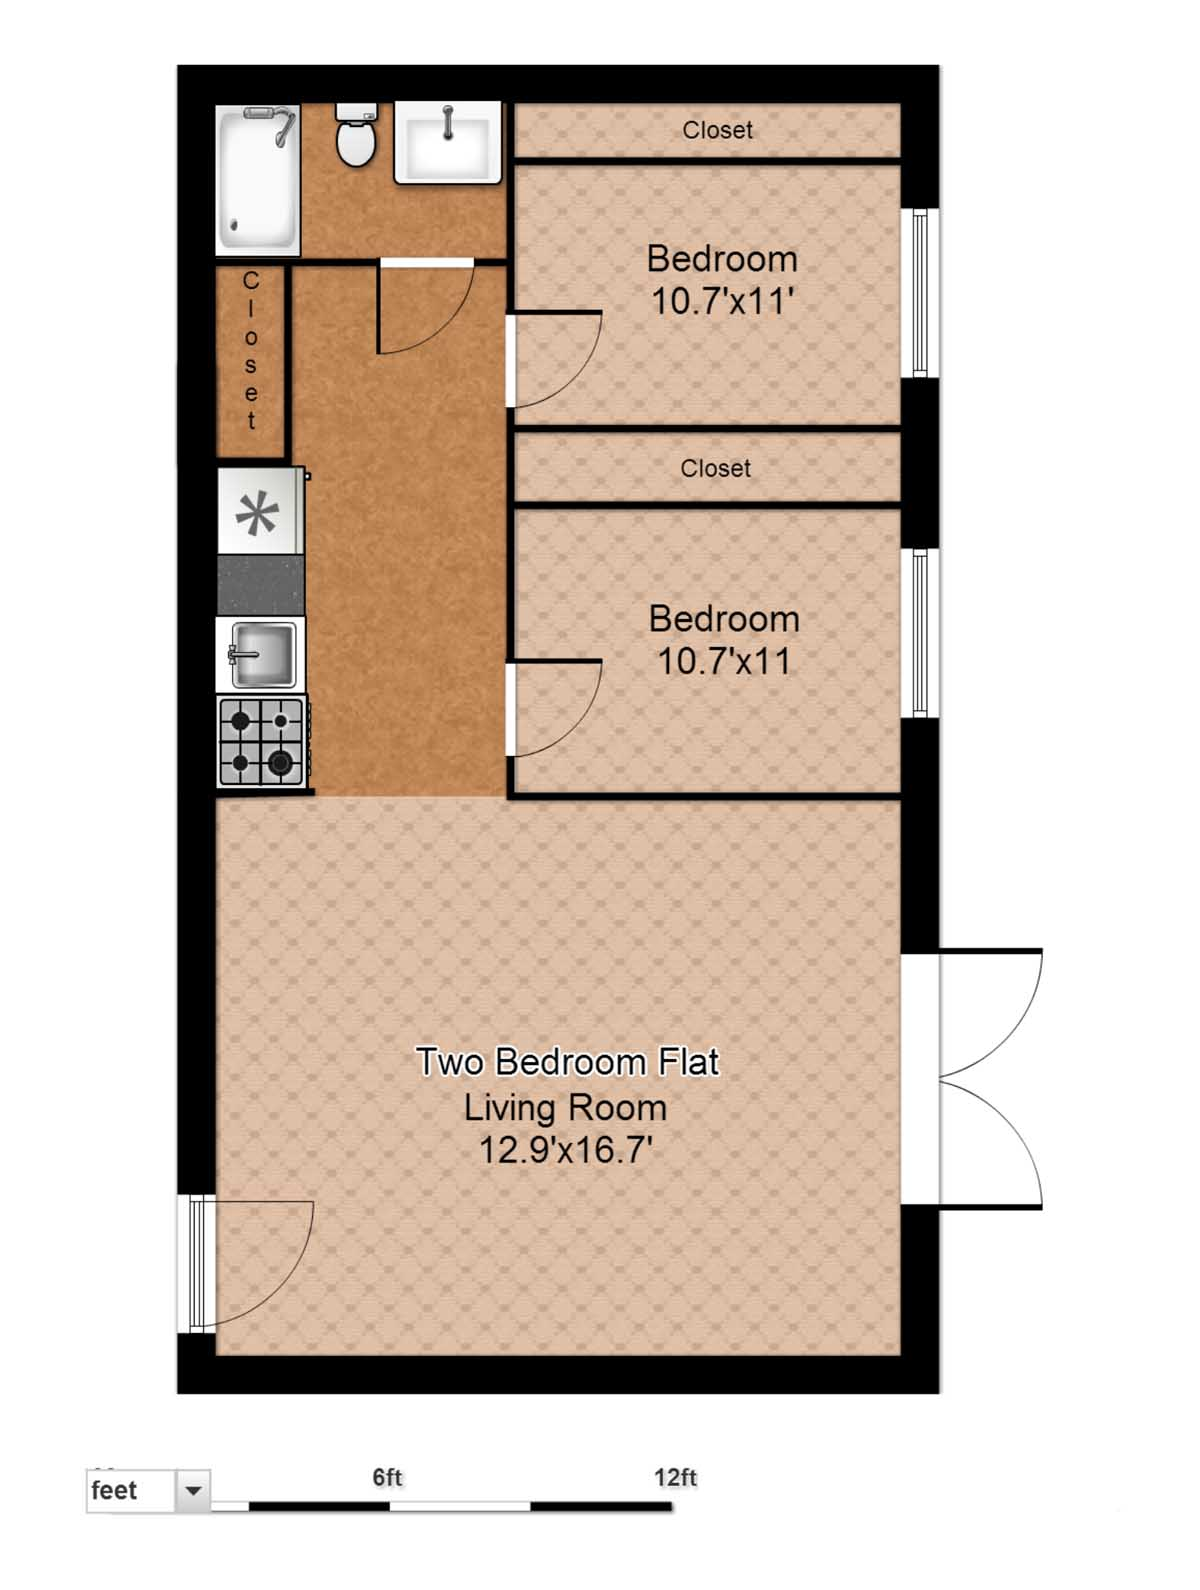 Floor plans evergreen terrace apartmentsevergreen for Two bedroom flat plan